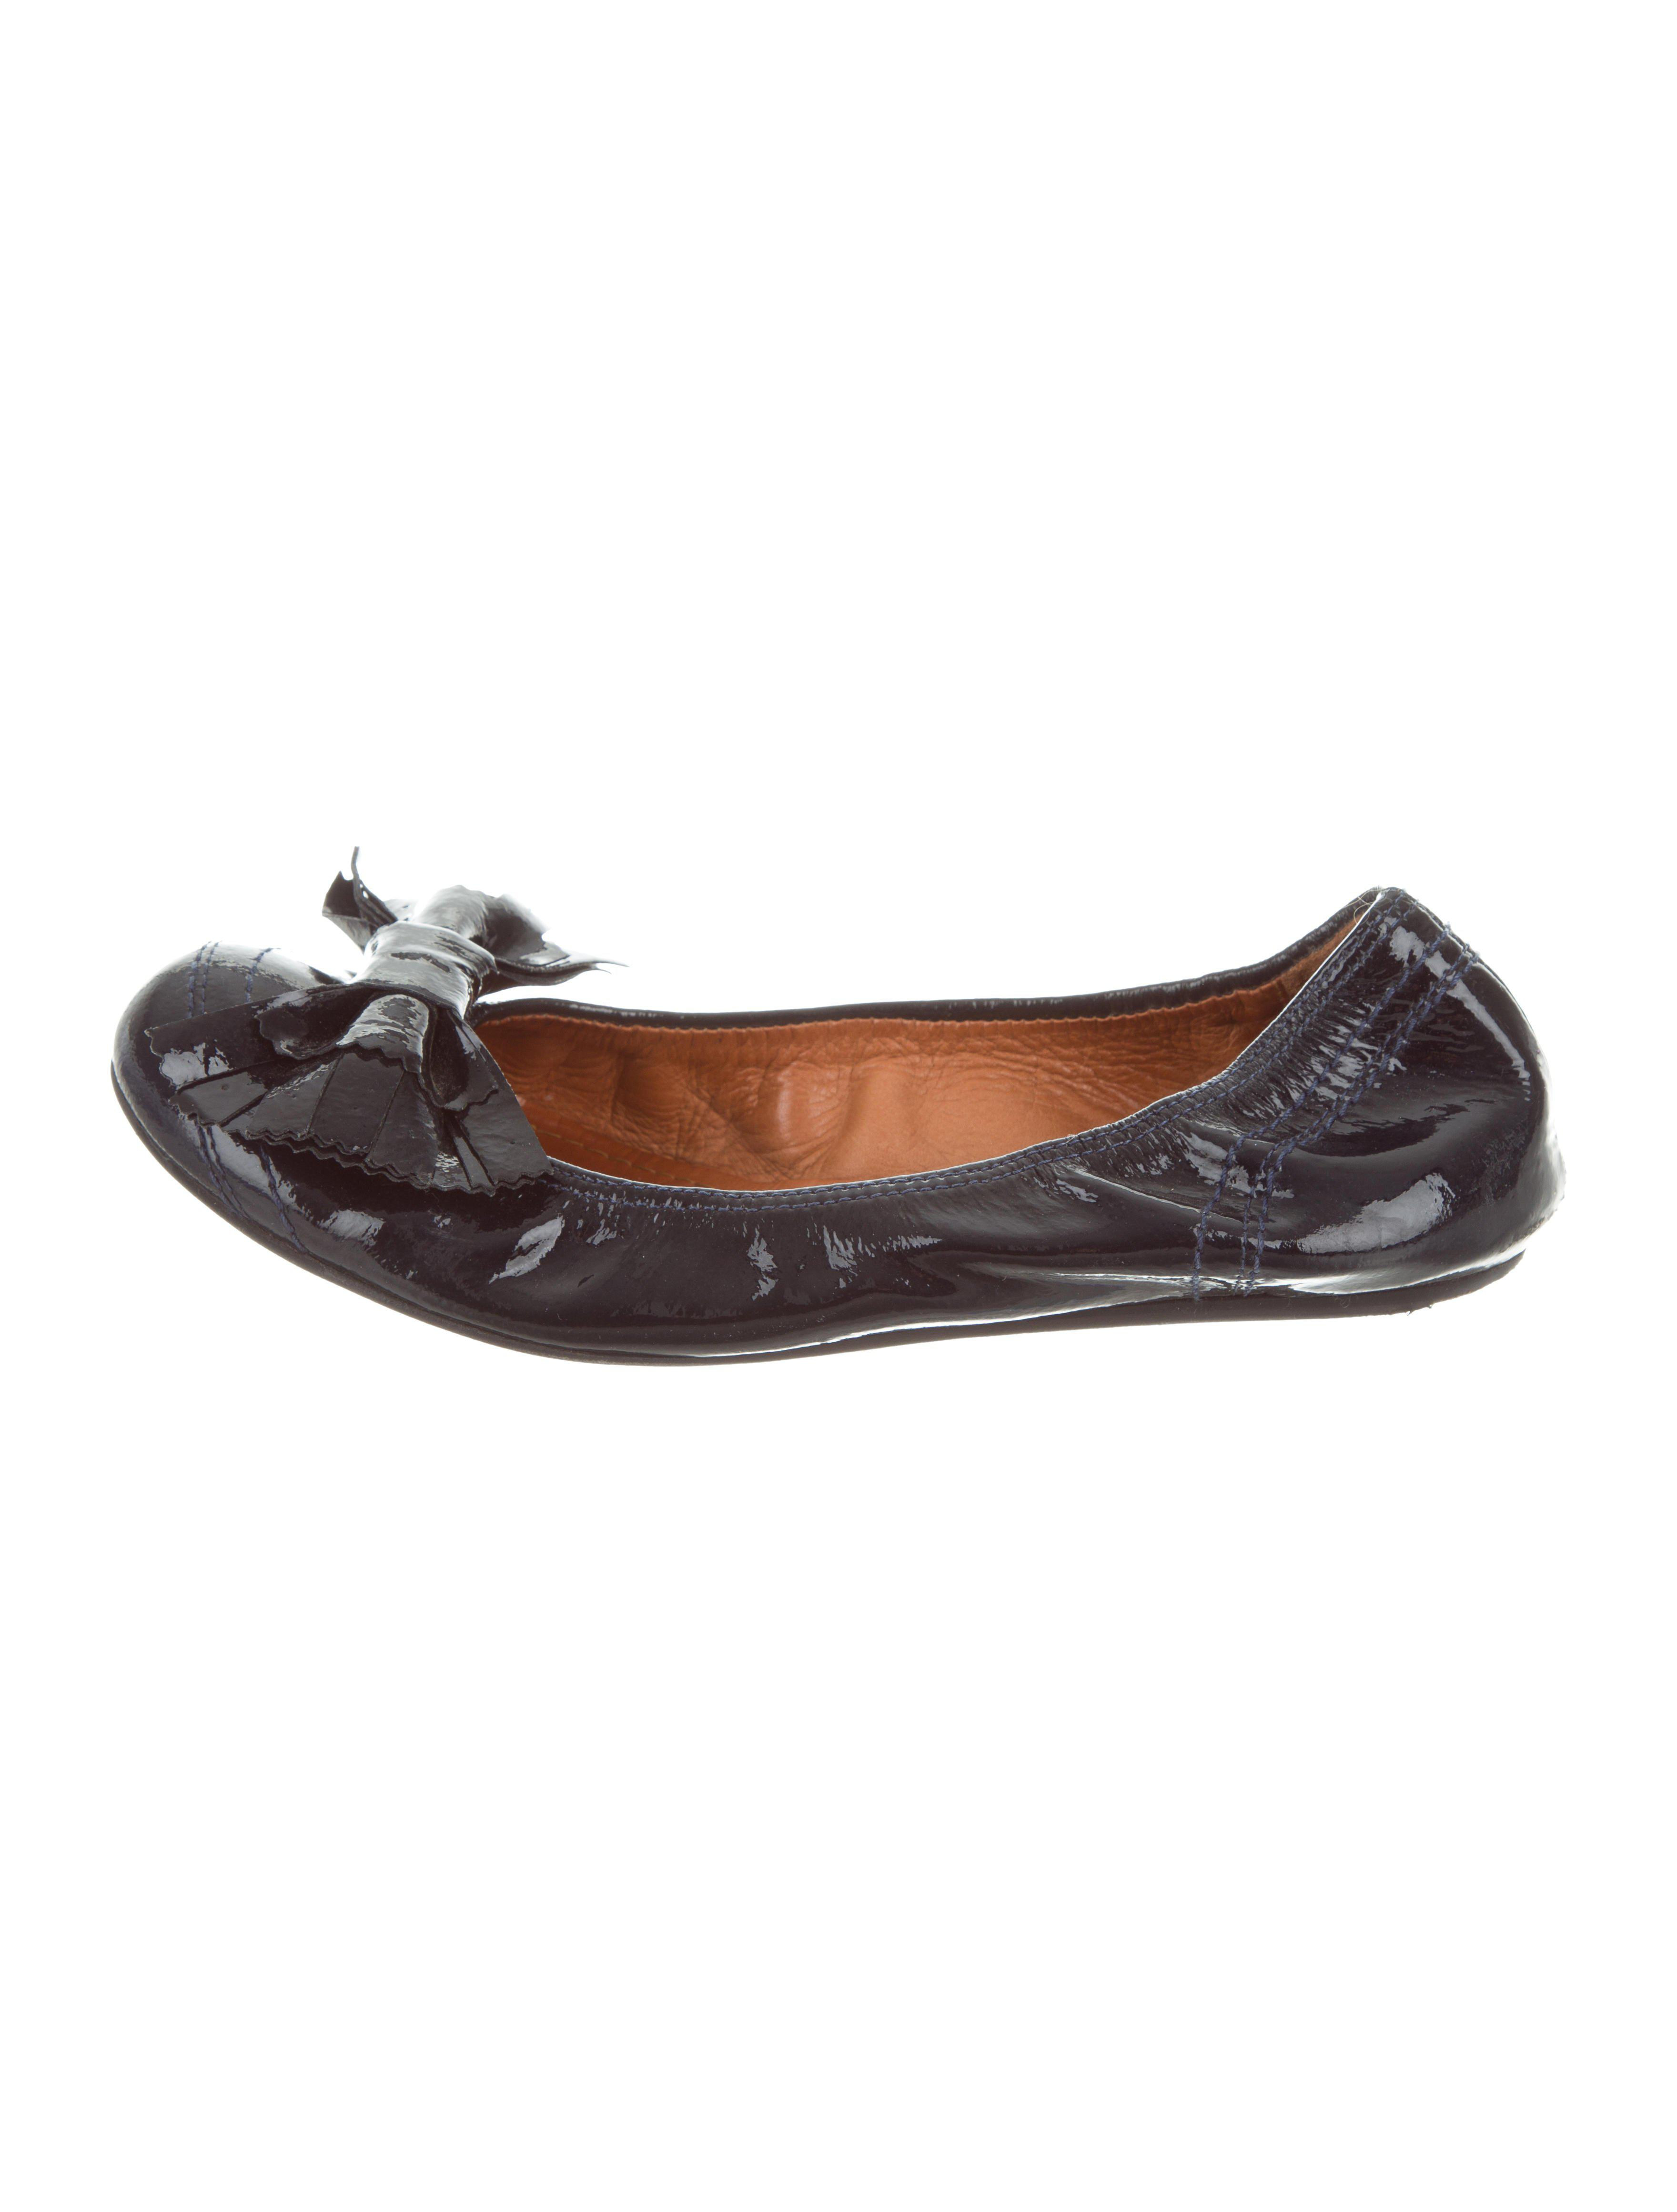 outlet extremely Lanvin Patent Round-Toe Flats how much online buy cheap buy marketable raqsEraOD4